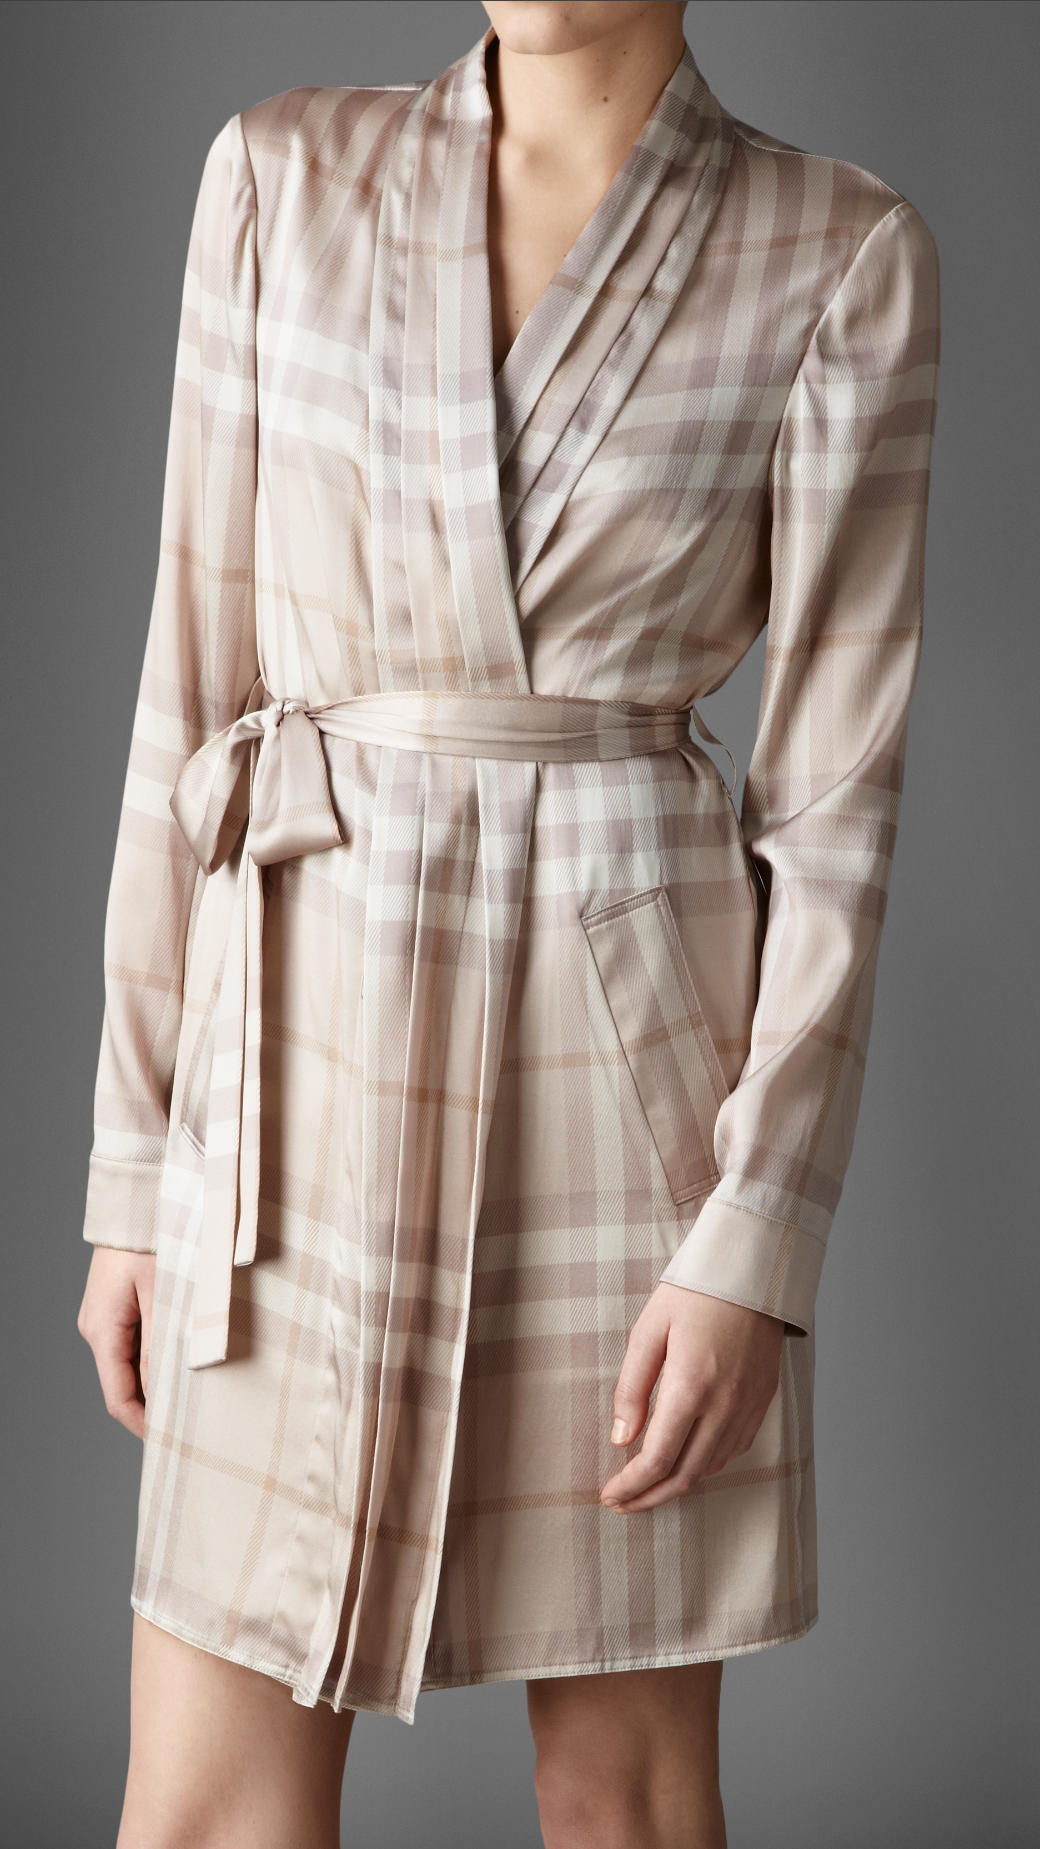 Lyst - Burberry Check Stretchsilk Dressing Gown in Natural